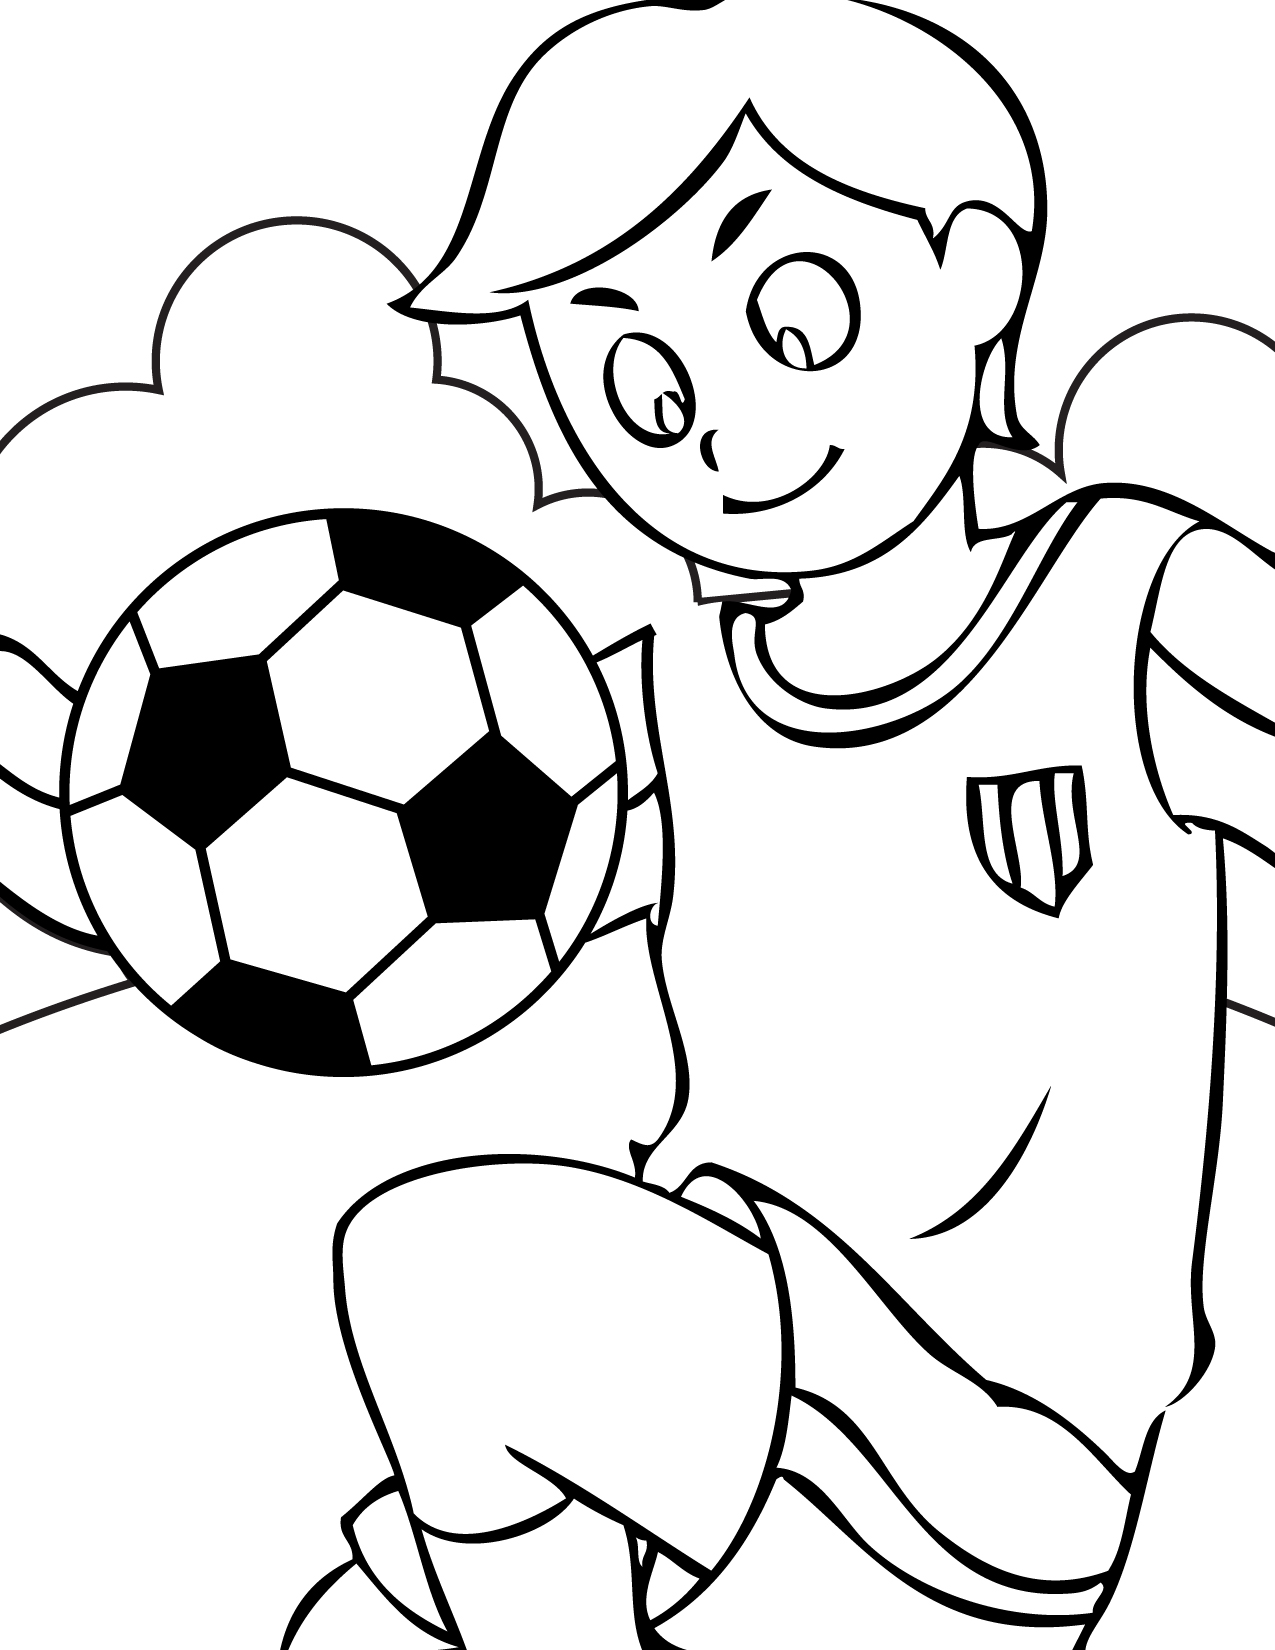 soccer coloring page handipoints on coloring pages about soccer